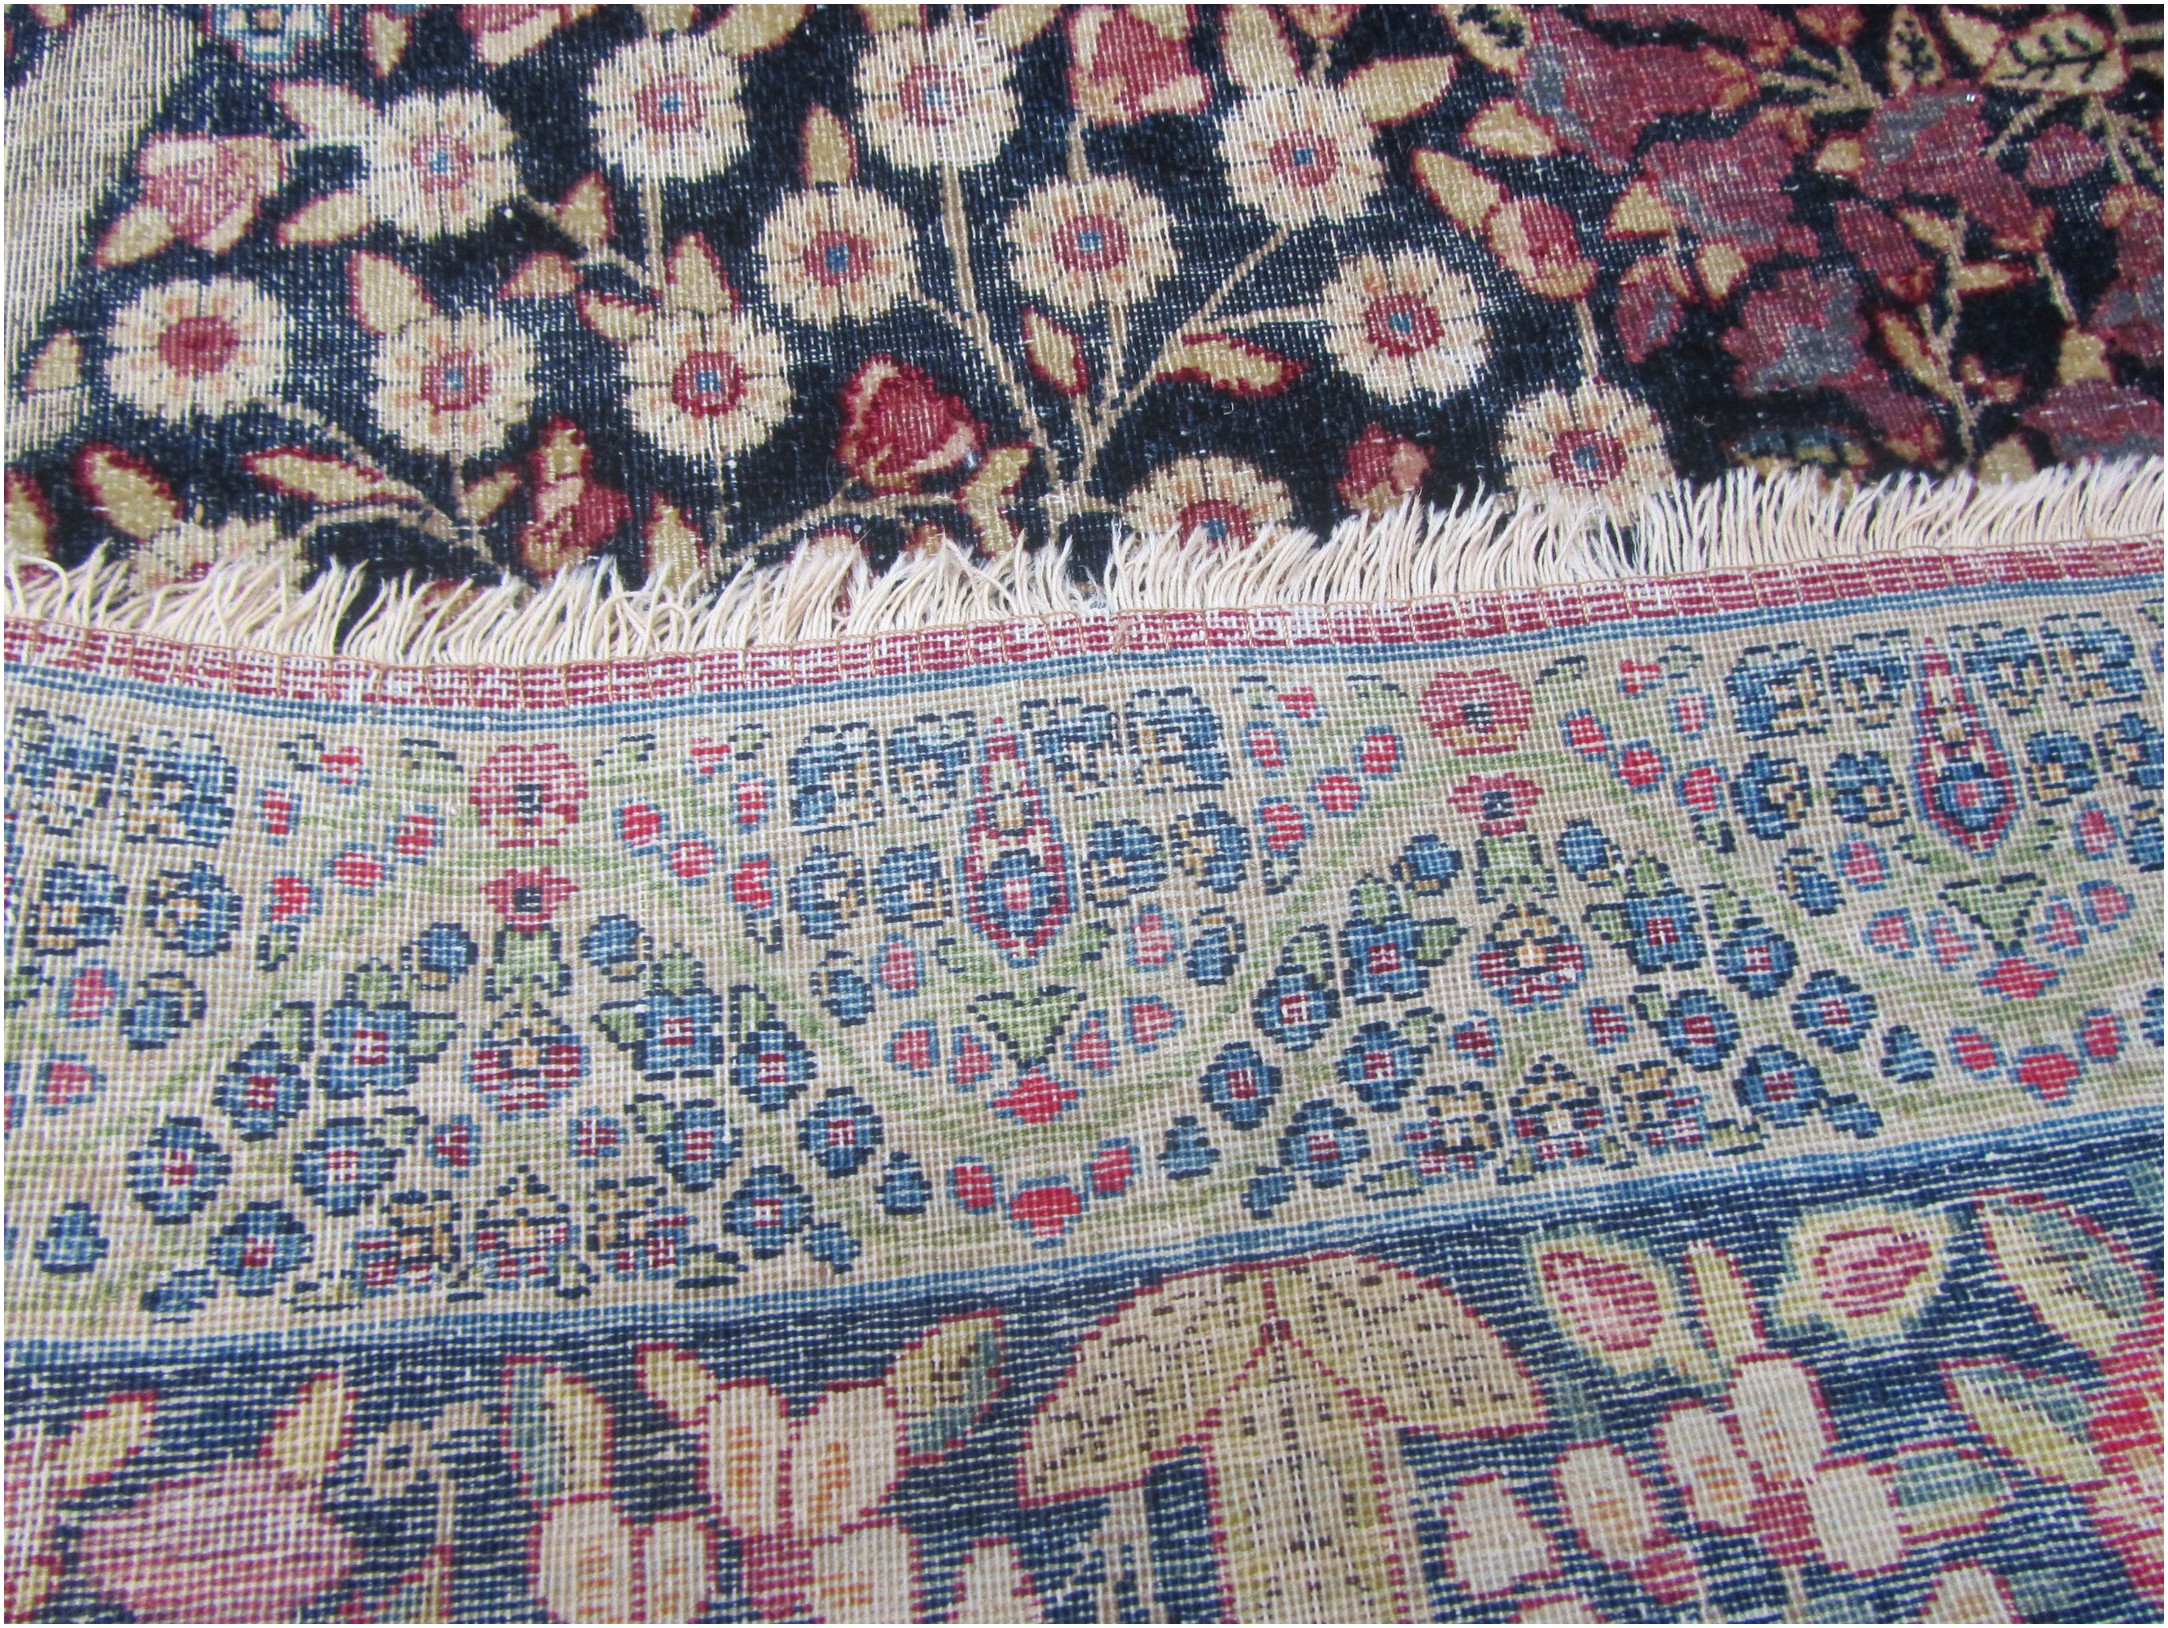 The back of the rug shows how finely knotted it is.